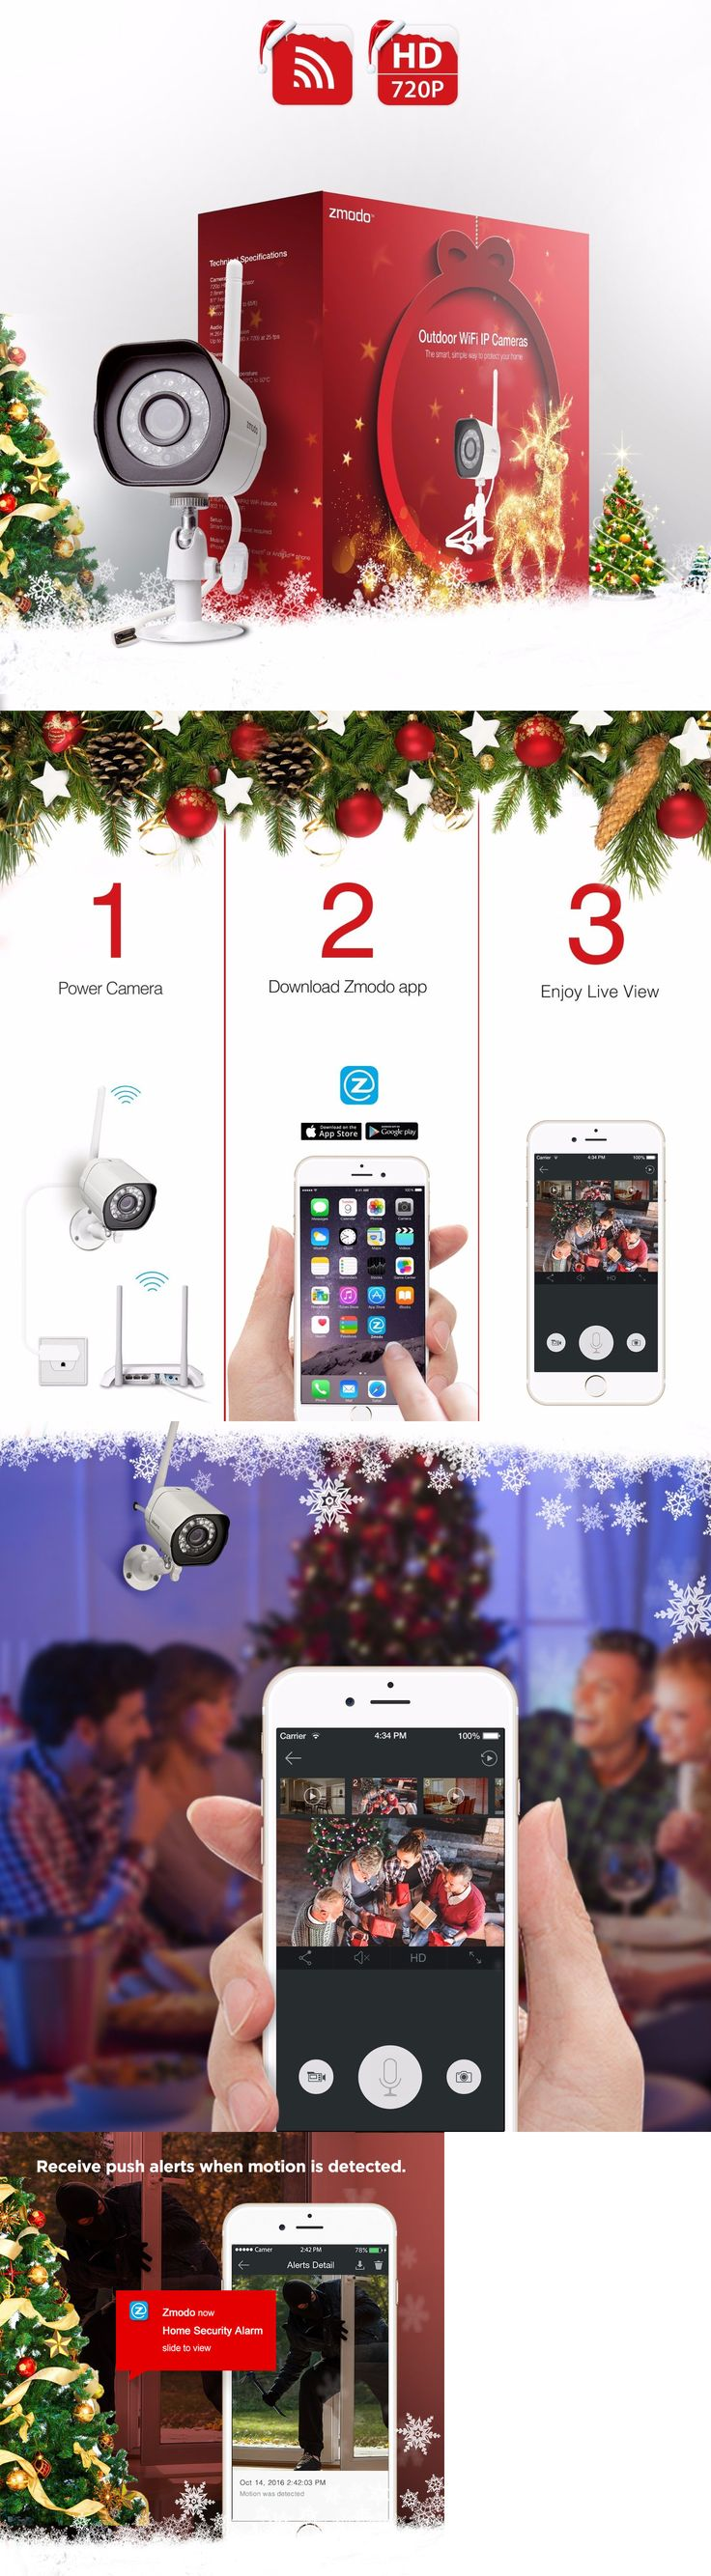 Security Cameras: Zmodo 720P Hd Wireless Network Outdoor Home Security Camera W/ Ir Night Vision BUY IT NOW ONLY: $35.0